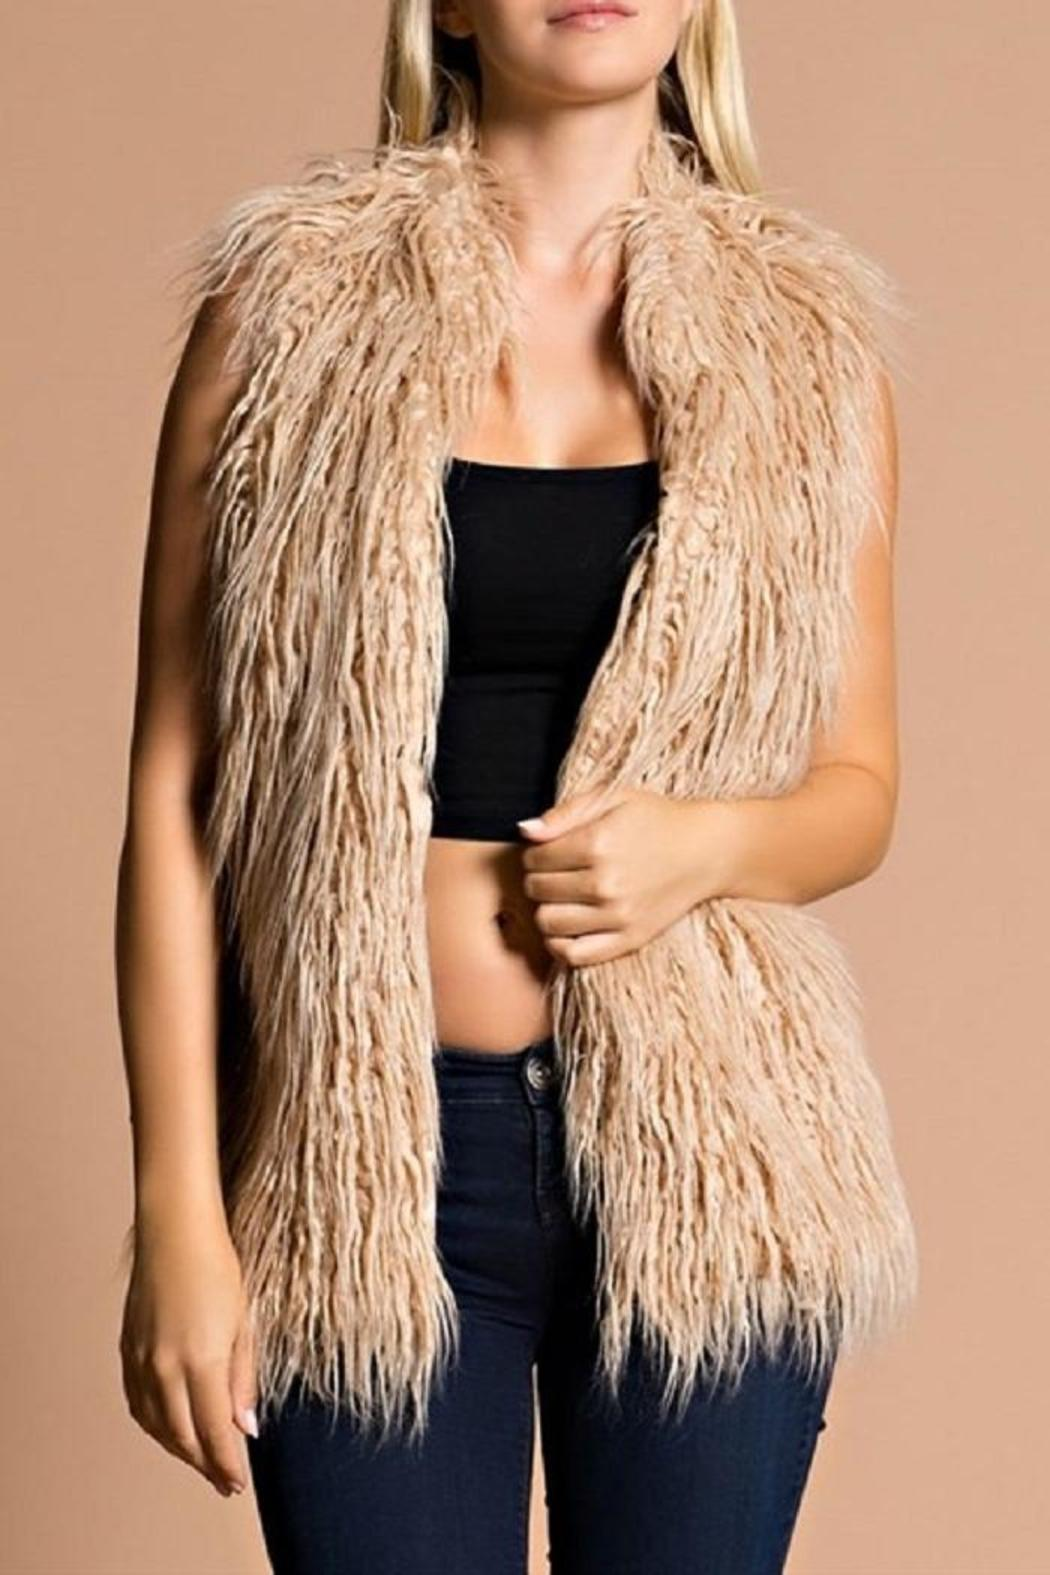 The perfect vest! This beauty features a sleeveless design, side pockets and a high collar. Anywhere you go, this faux fur vest will keep you stylin' and cozy at all times.